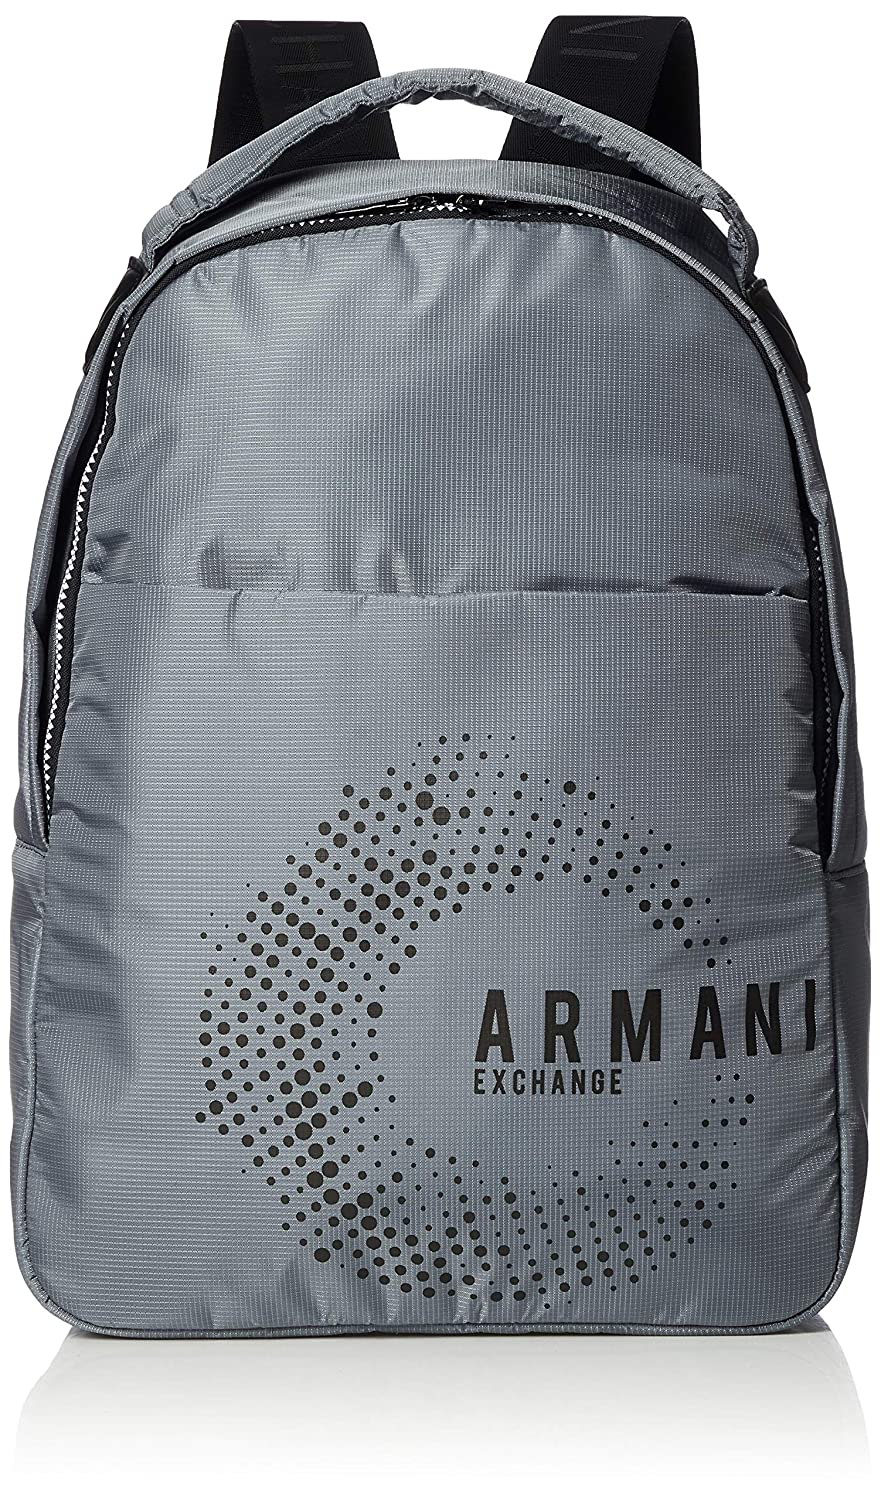 Image of Armani Exchange Men's Graphic Backpack Casual Daypacks